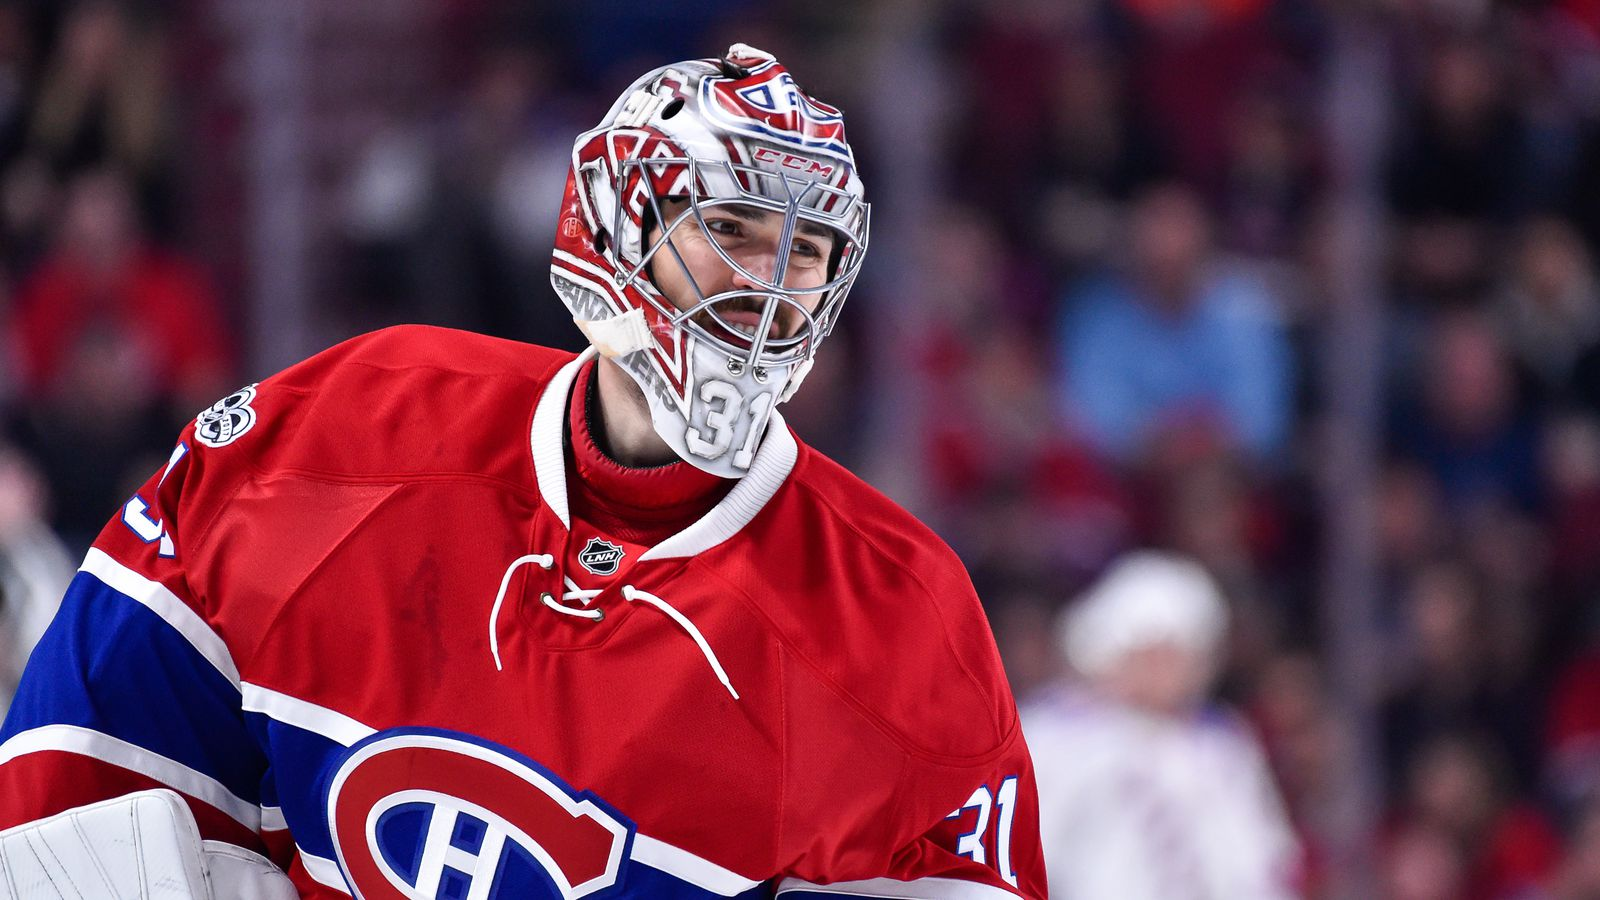 carey price named a finalist for the vezina trophy